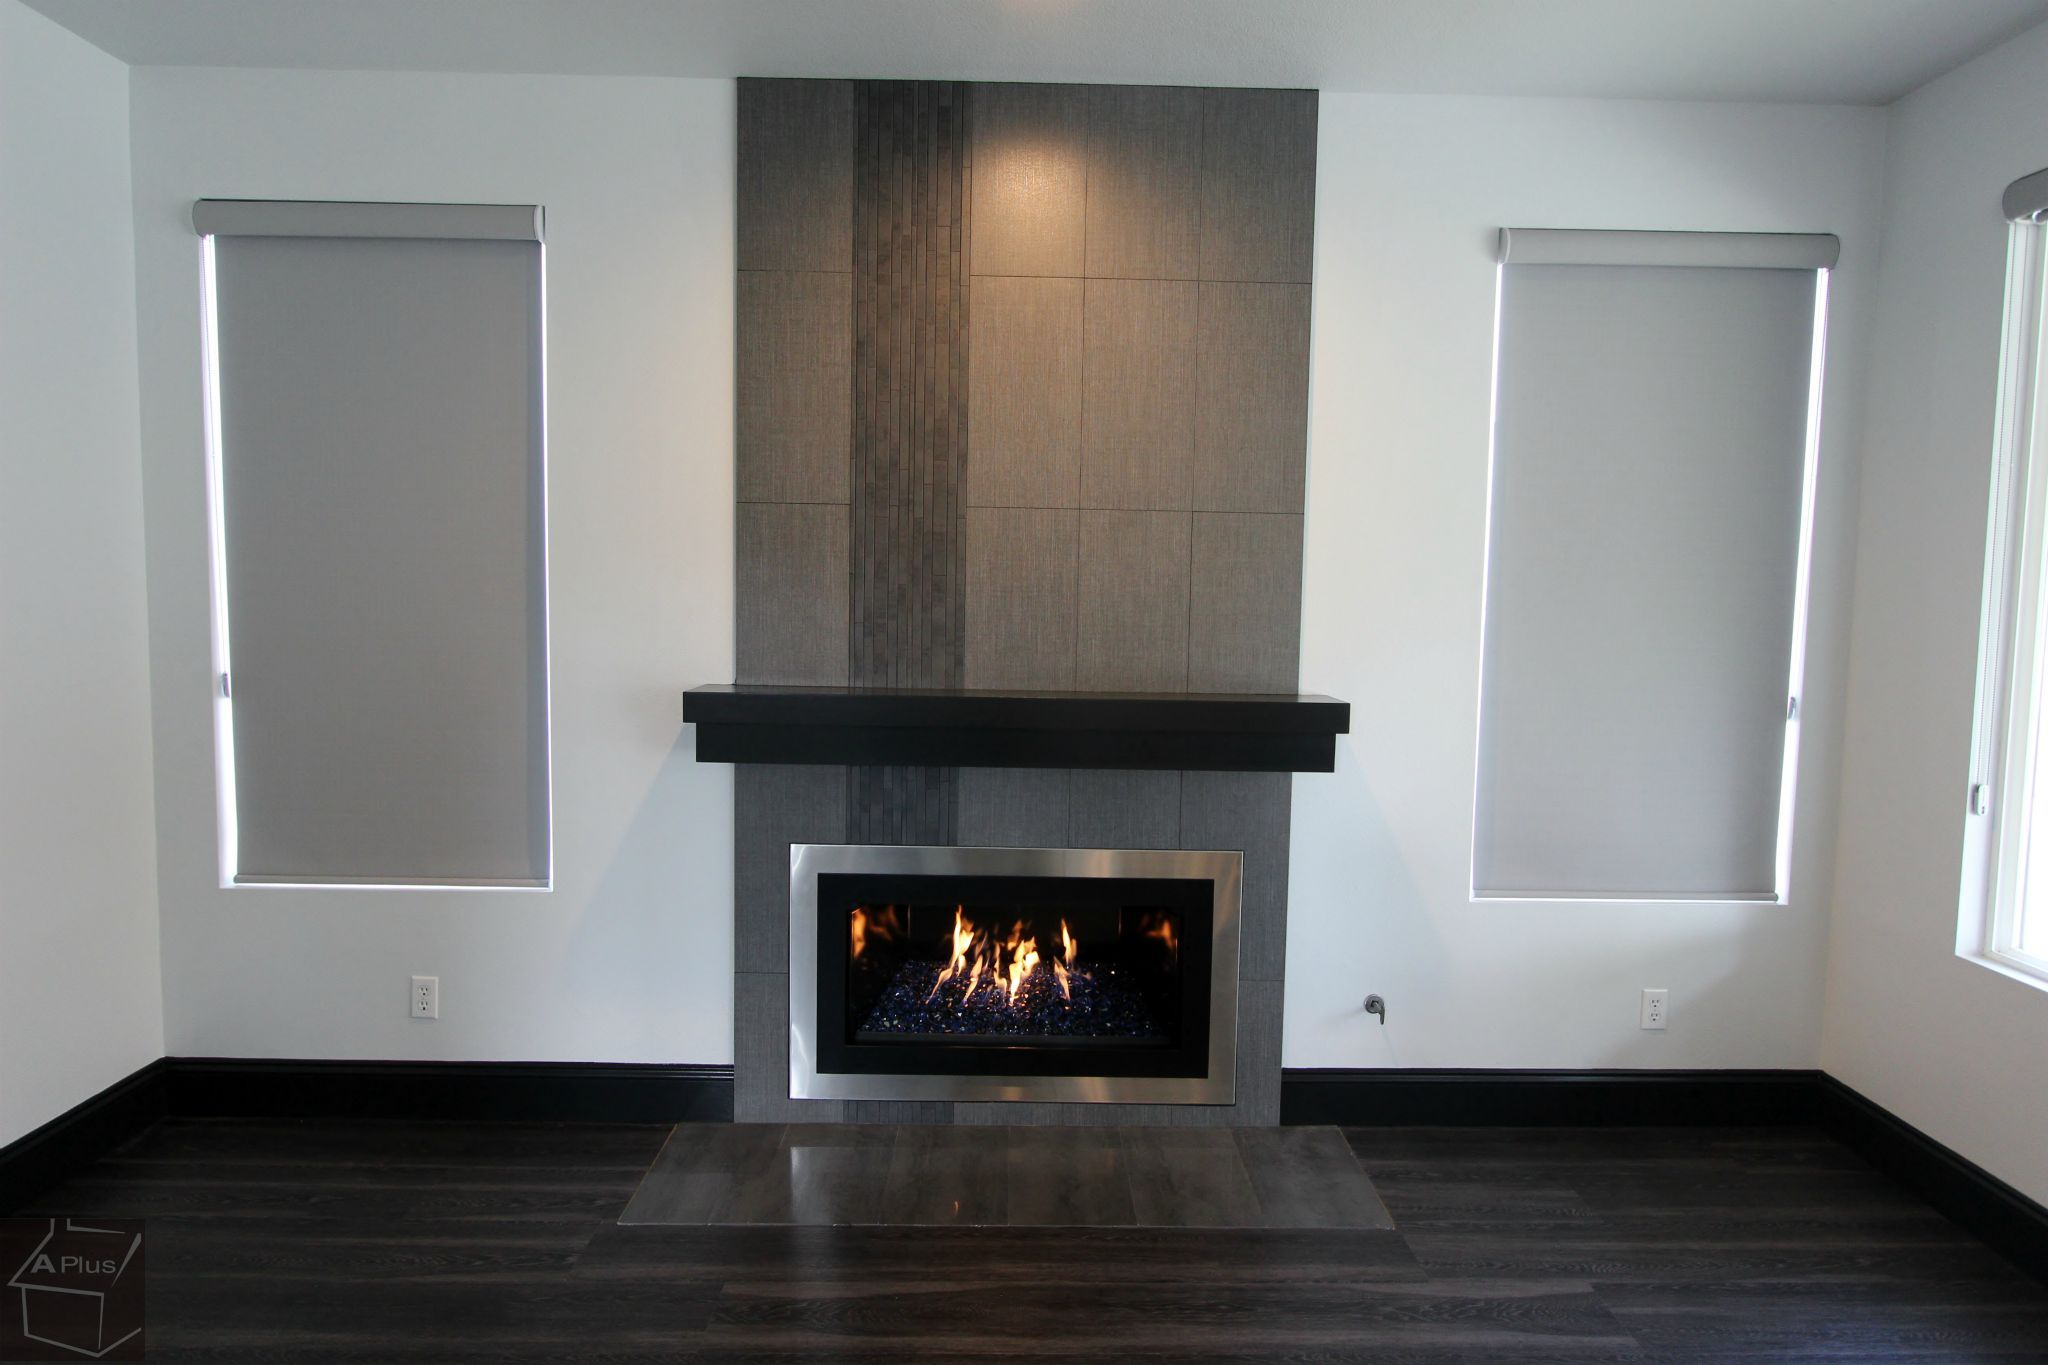 Fire Place Remodel With Design Build Custom Modern Sophia Line